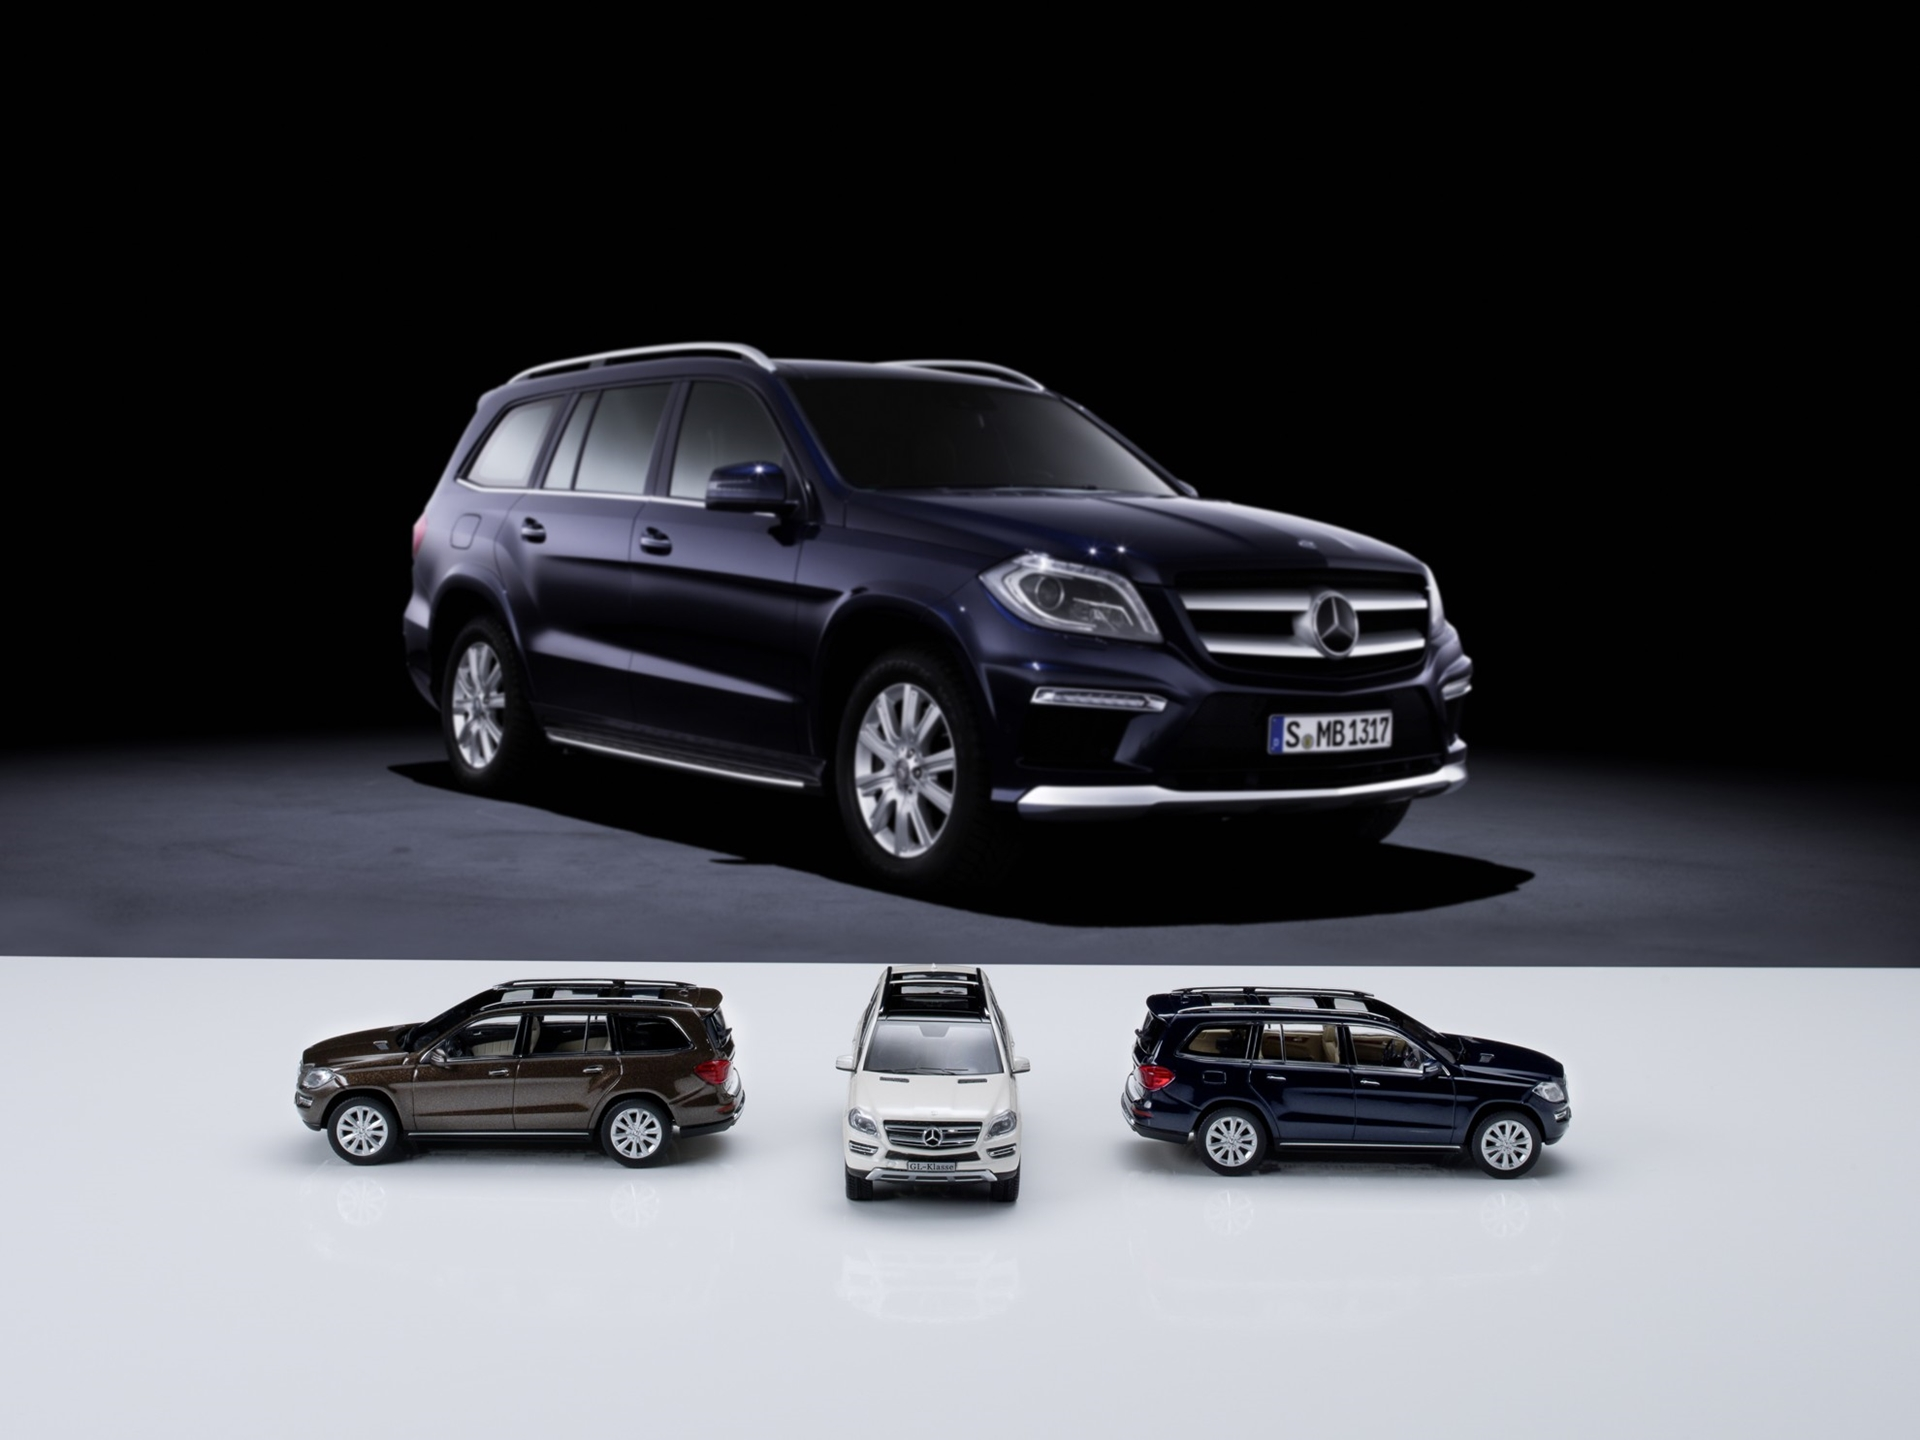 3d car shows mercedes benz gl class car models for Mercedes benz toy car models